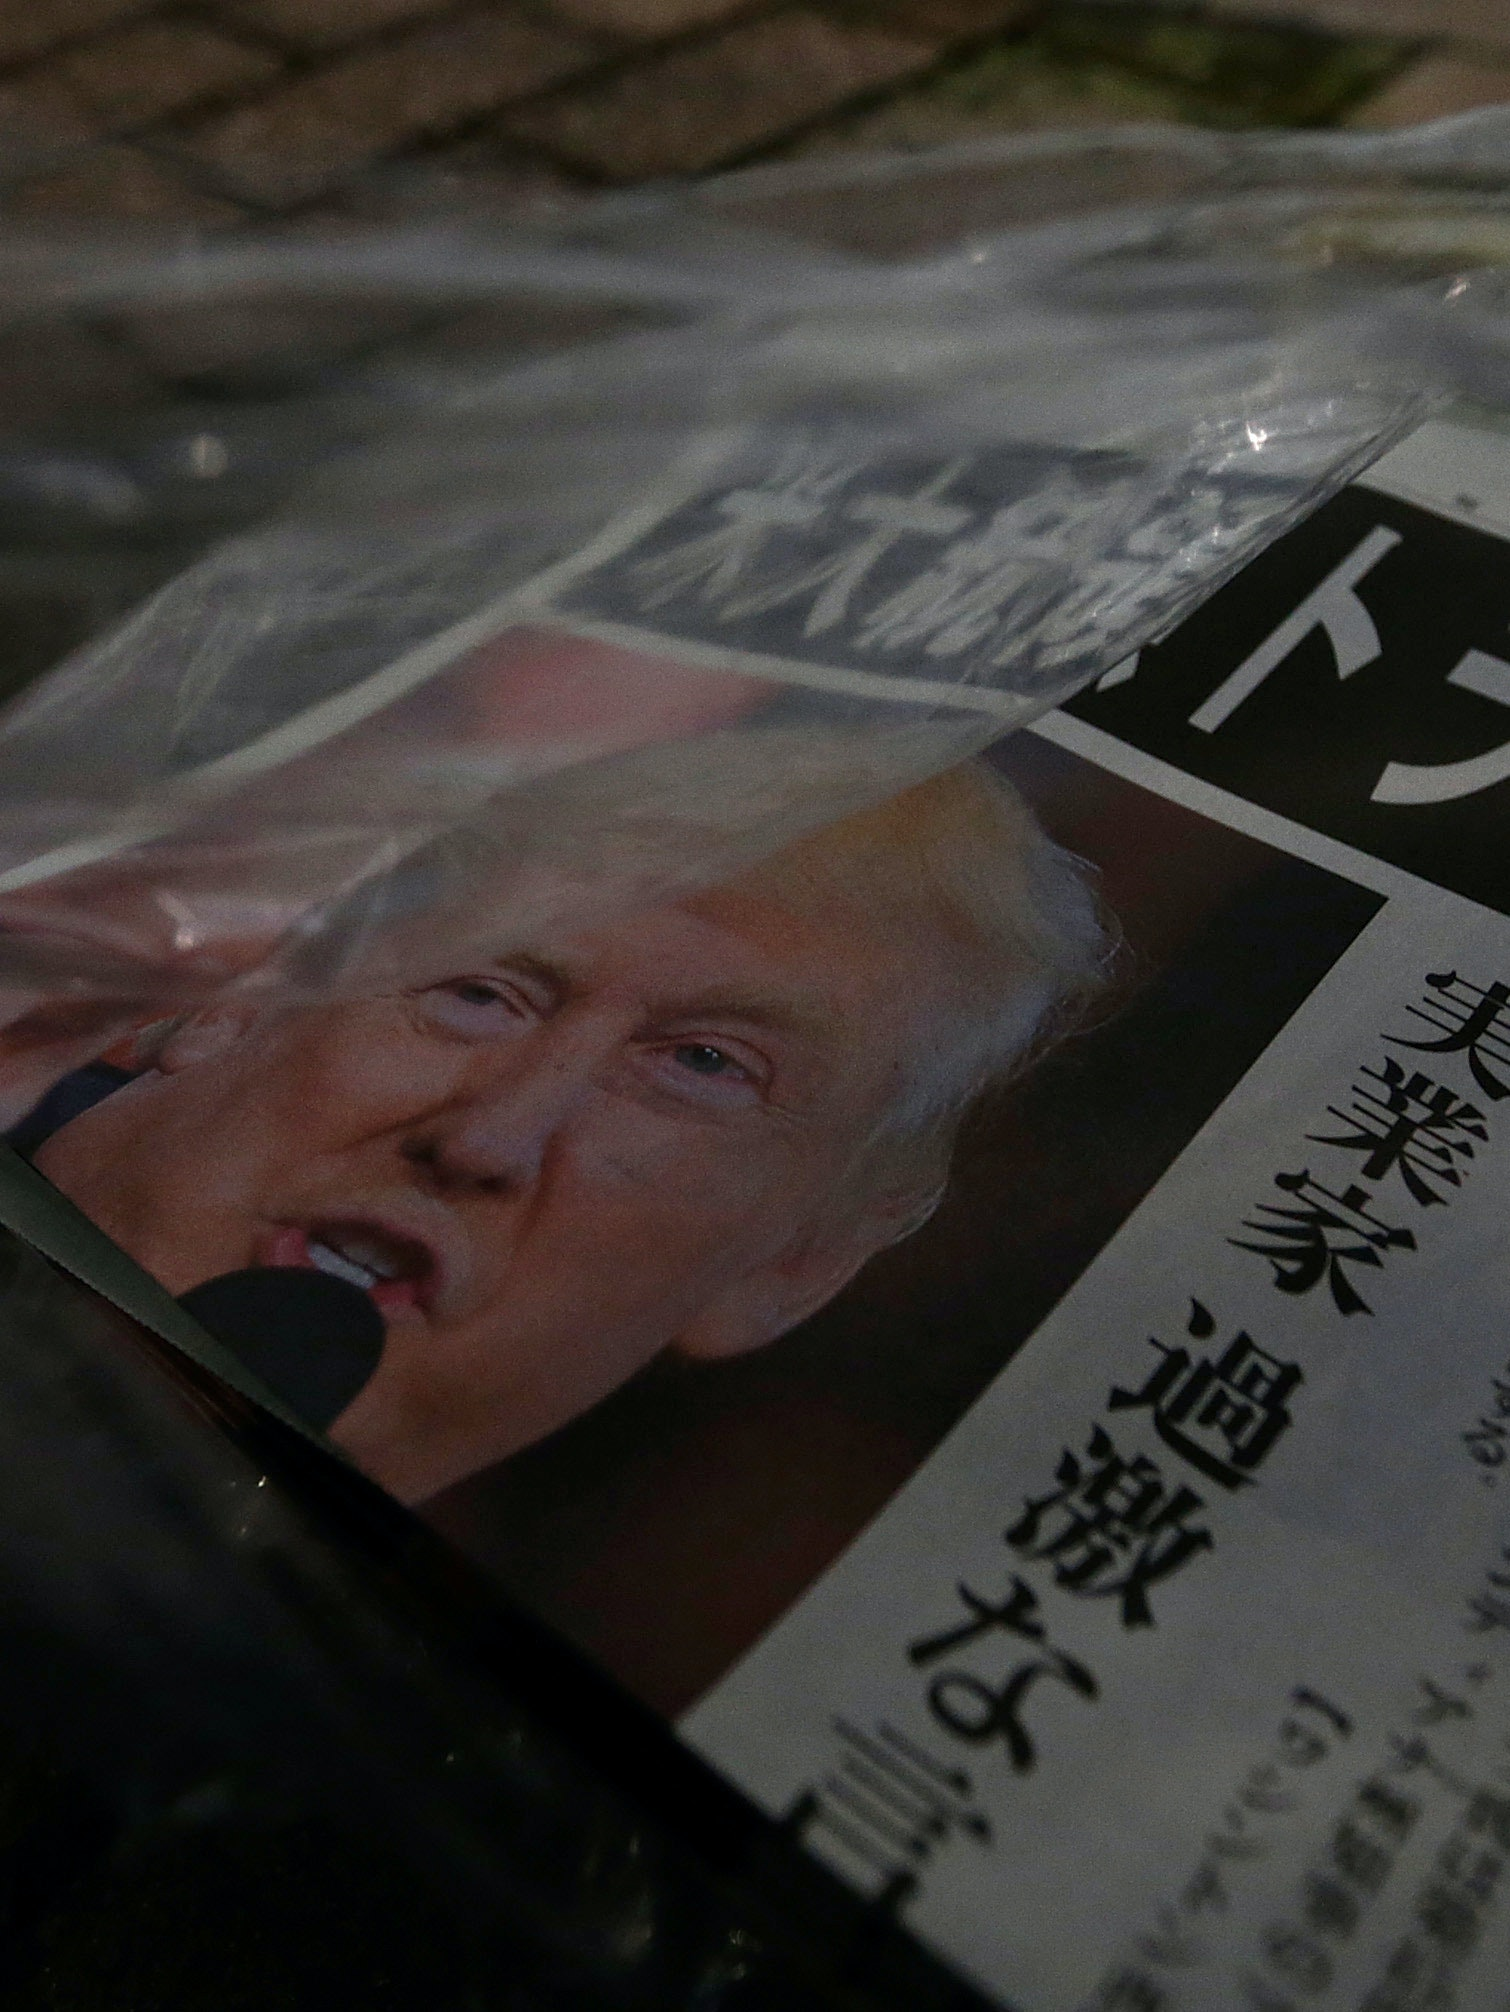 TOKYO, JAPAN - NOVEMBER 09:  An extra edition of a newspaper featuring a front page report on the U.S. Presidential Election and Republican President-elect Donald Trump is seen on a street on November 9, 2016 in Tokyo, Japan. Donald Trump defeated Democratic presidential nominee Hillary Clinton to become the 45th president of the United States.  (Photo by Yuya Shino/Getty Images)